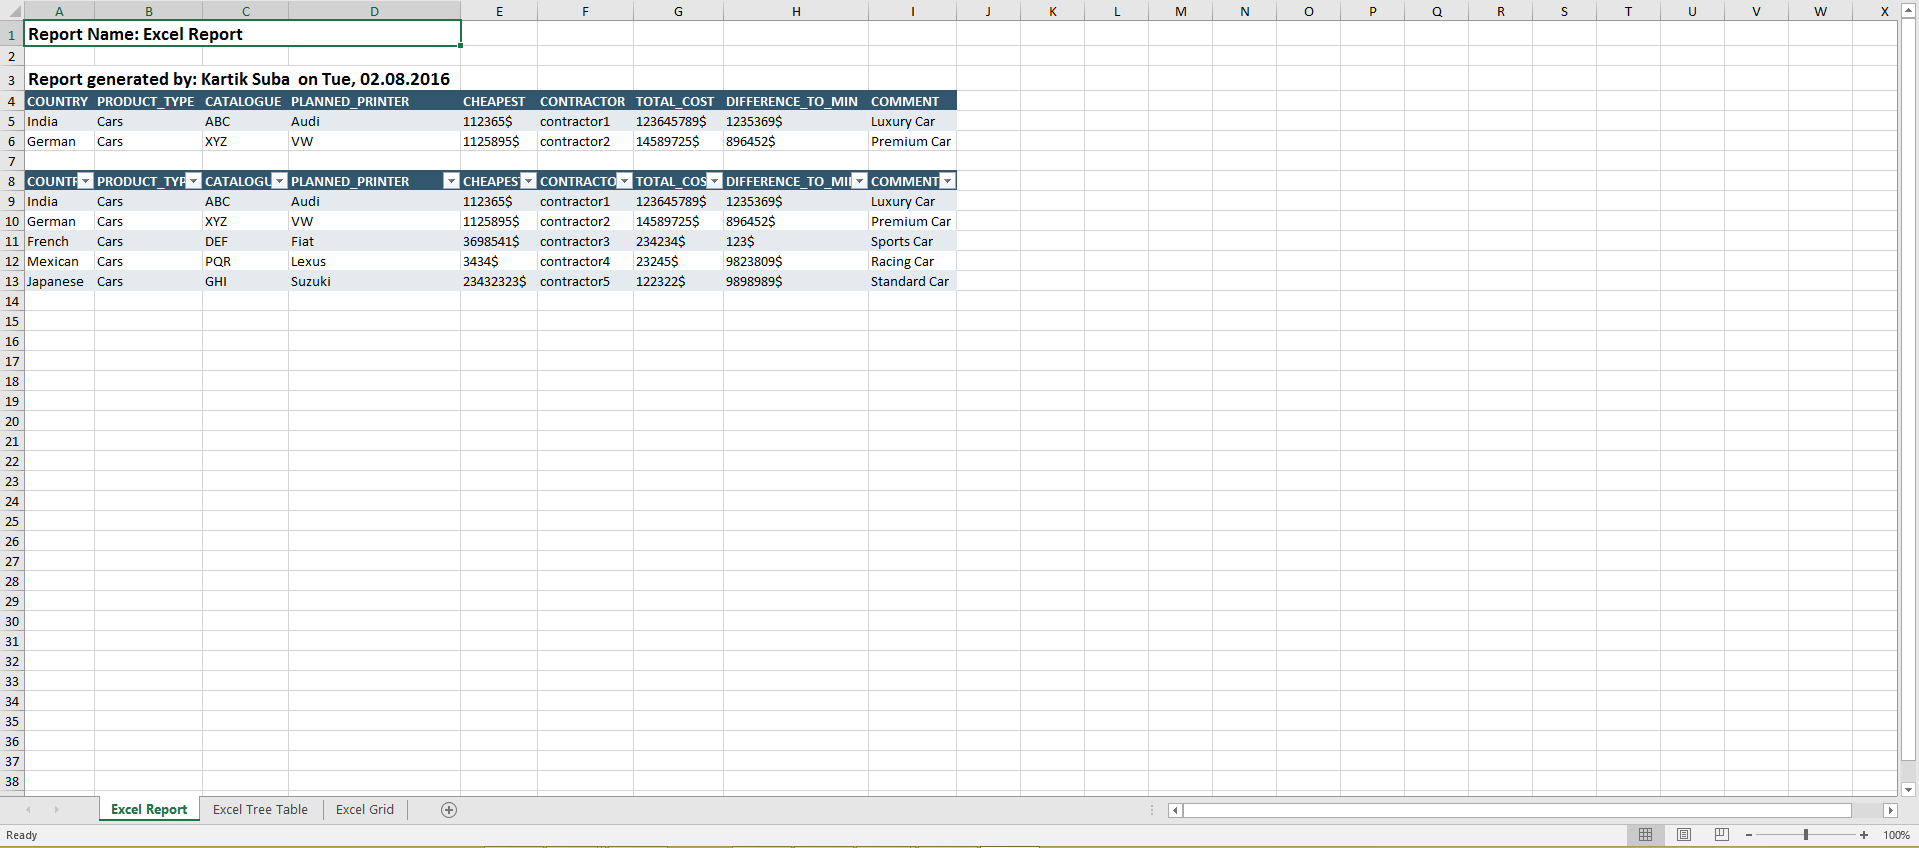 Worksheet Add Header